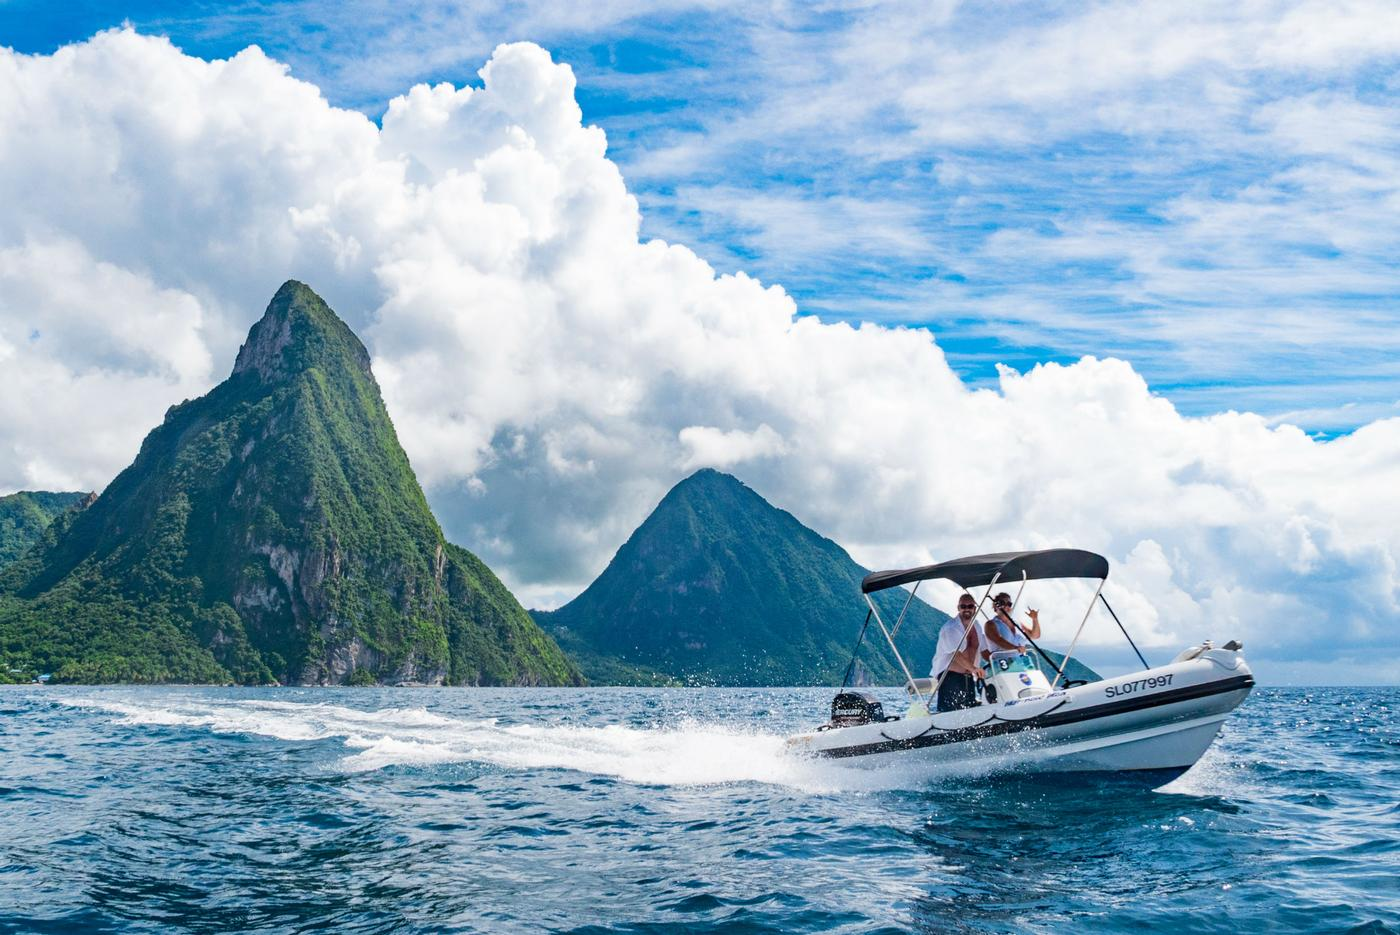 guests ridin speed boat alond st. lucia's coast